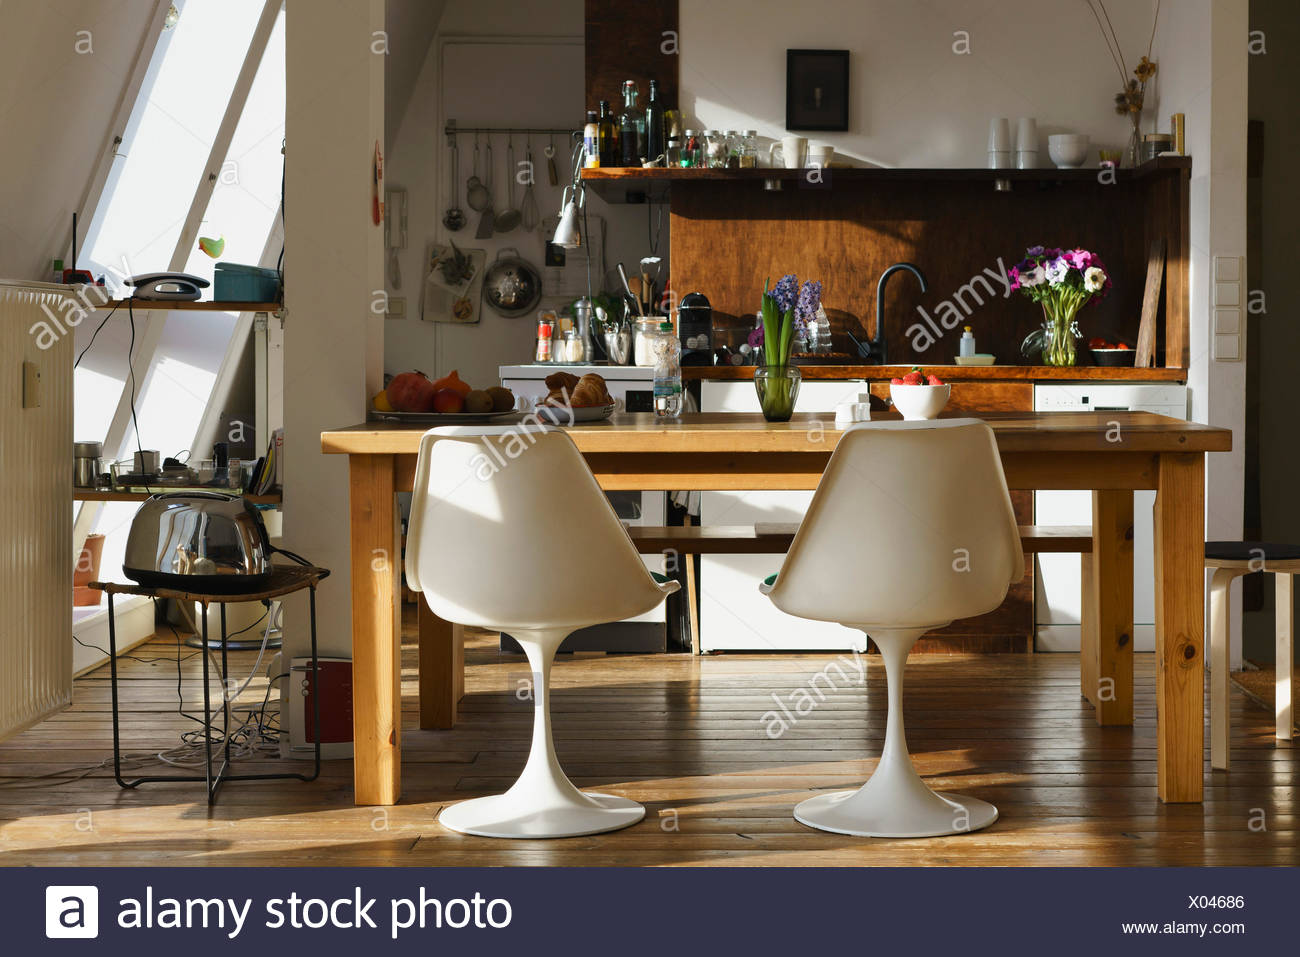 At Home Kitchen Chairs.Chairs And Table In Modern Kitchen At Home Stock Photo 275458630